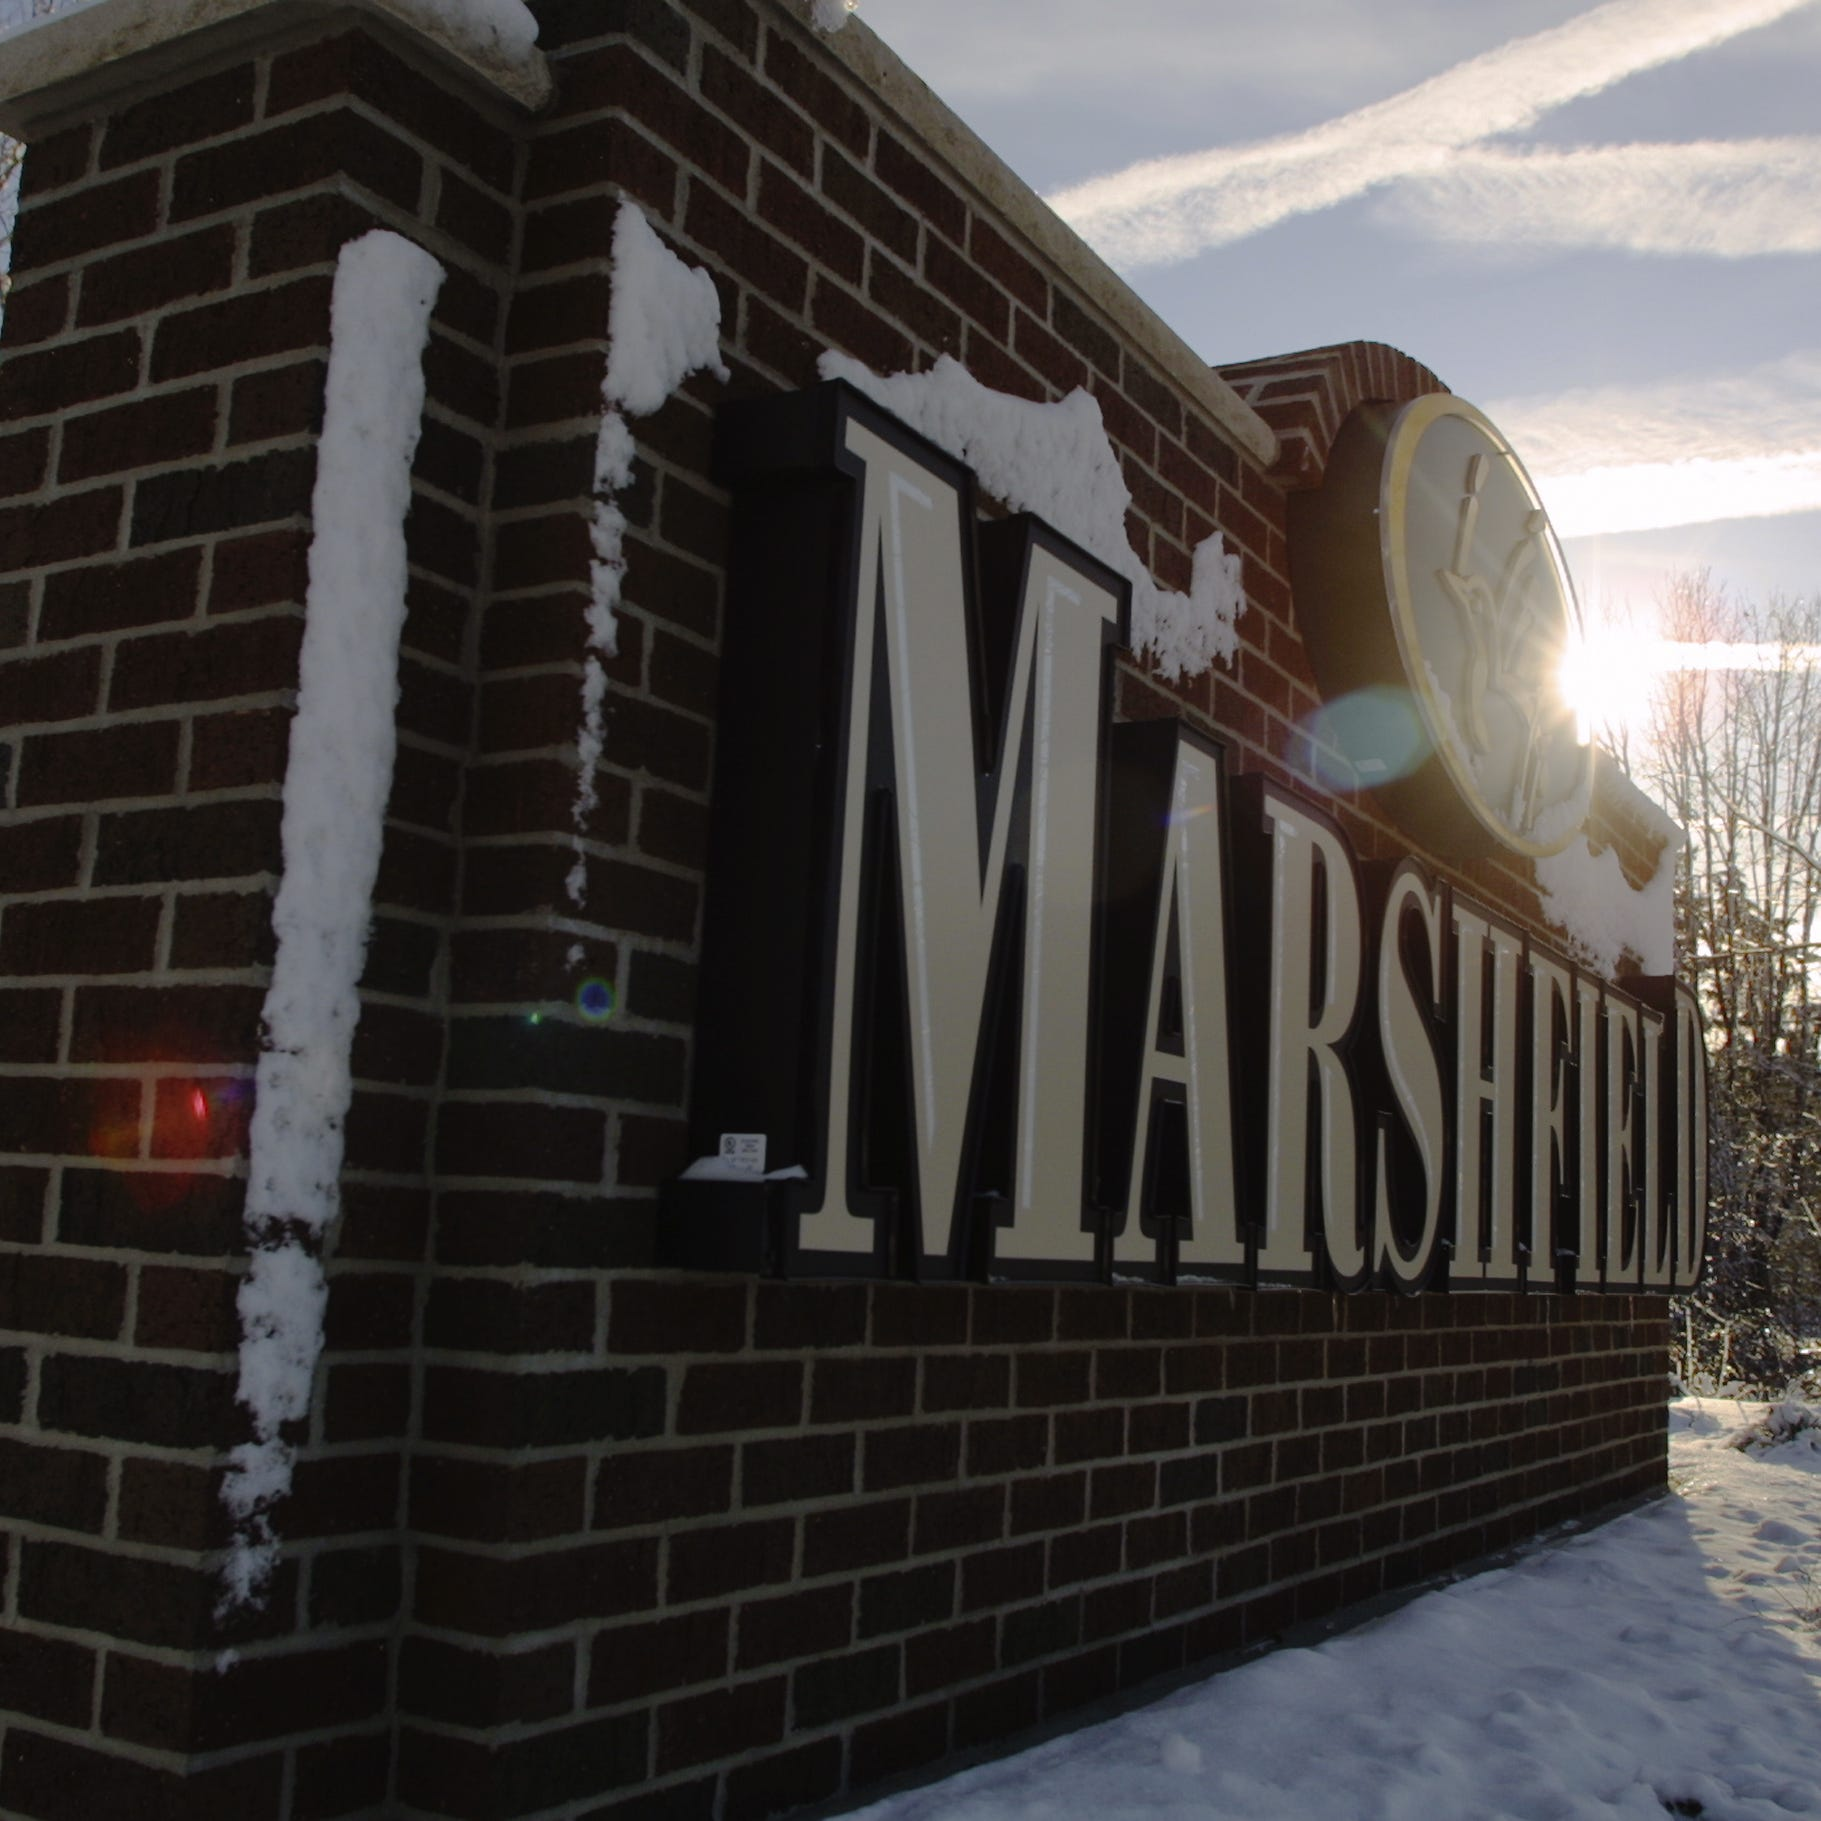 A Marshfield sign greets visitors coming into town on Highway 13 North.